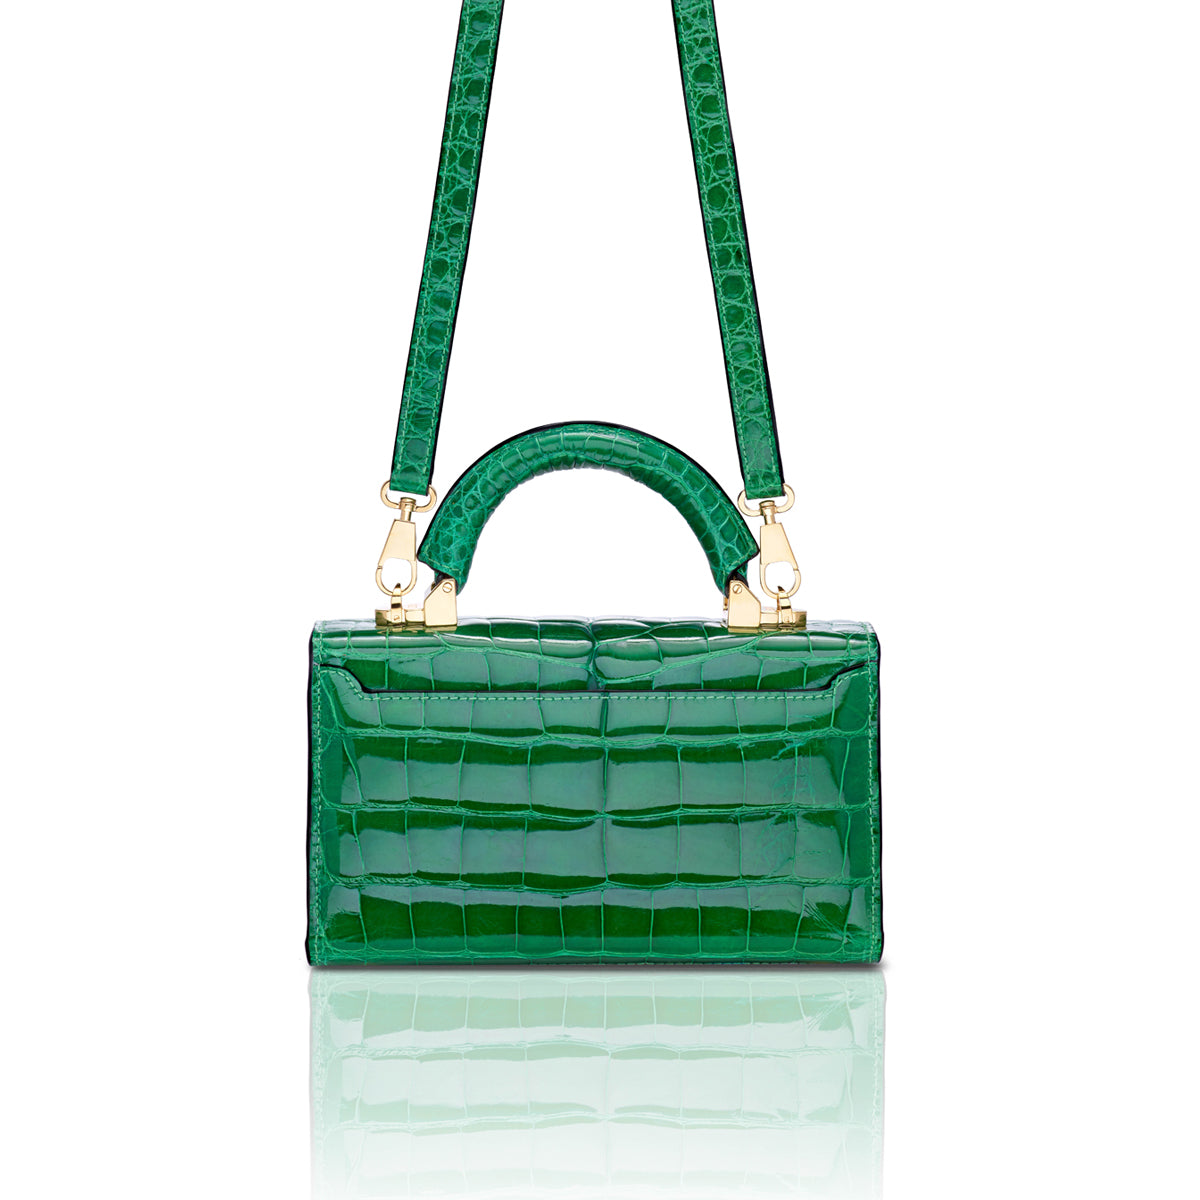 Top Handle 2.0 Mini - Grass Green Alligator